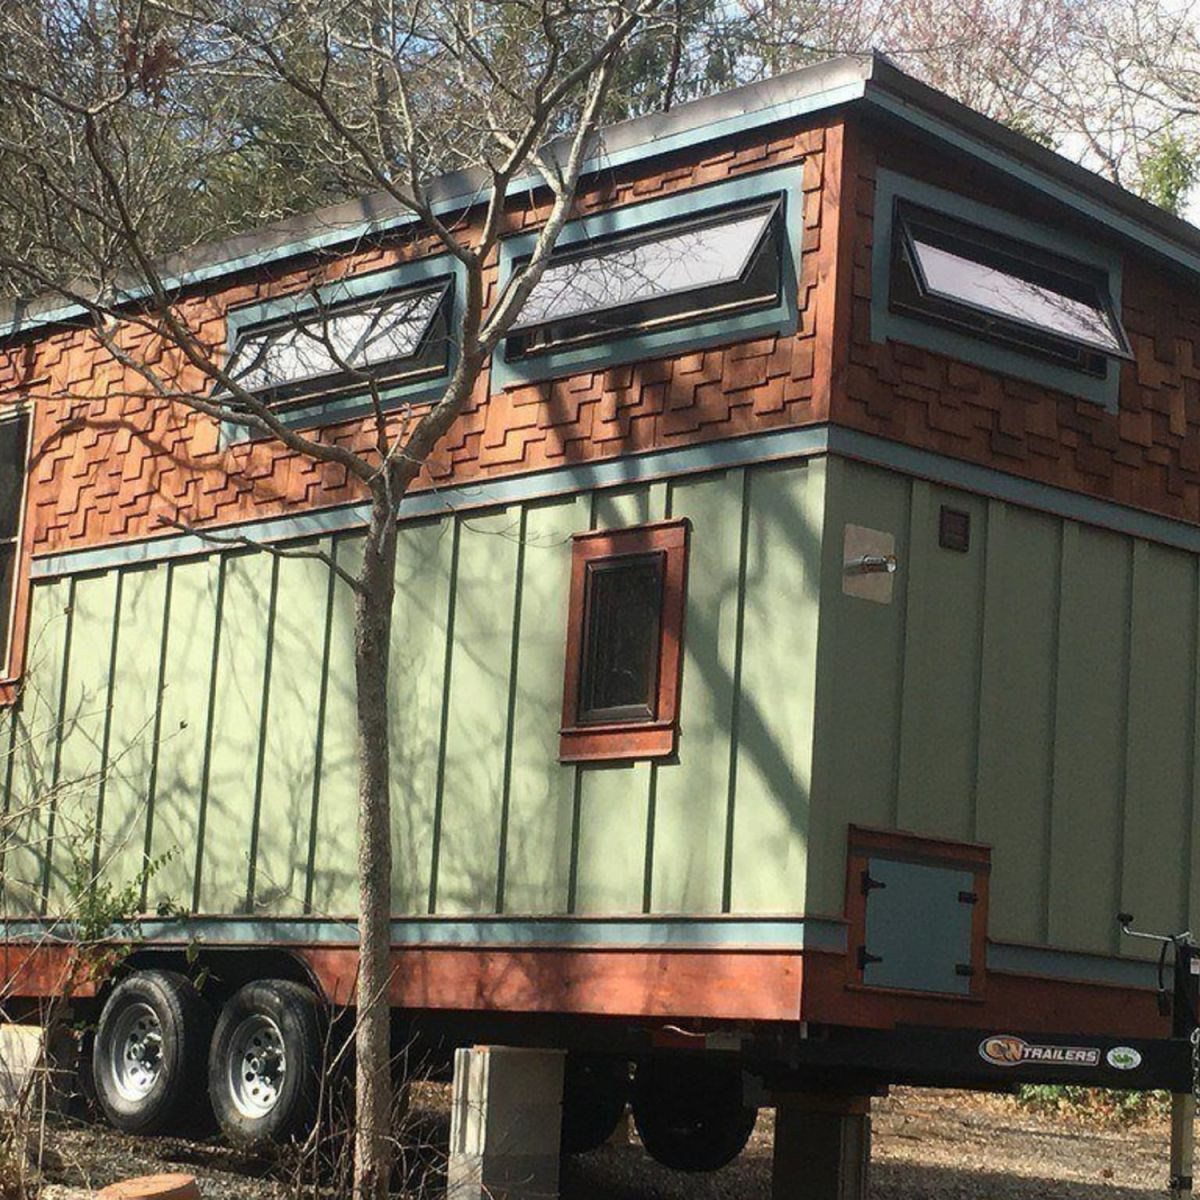 Small House For Rent: Tiny Houses For Sale In Asheville